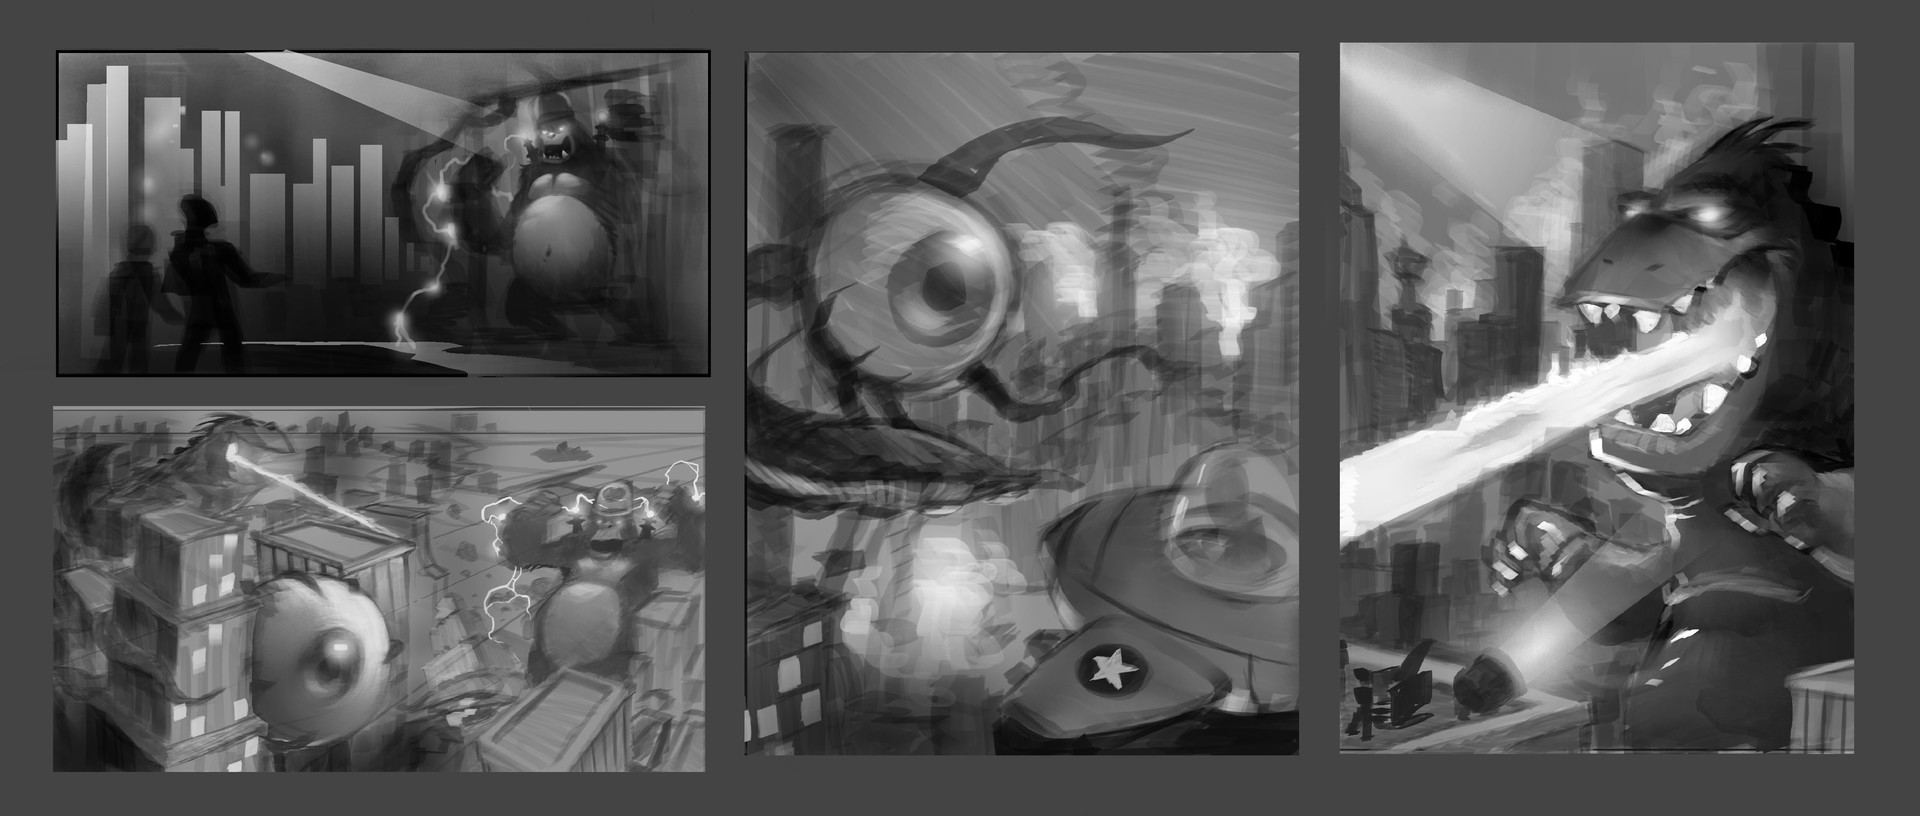 Chx welch mood thumbnails